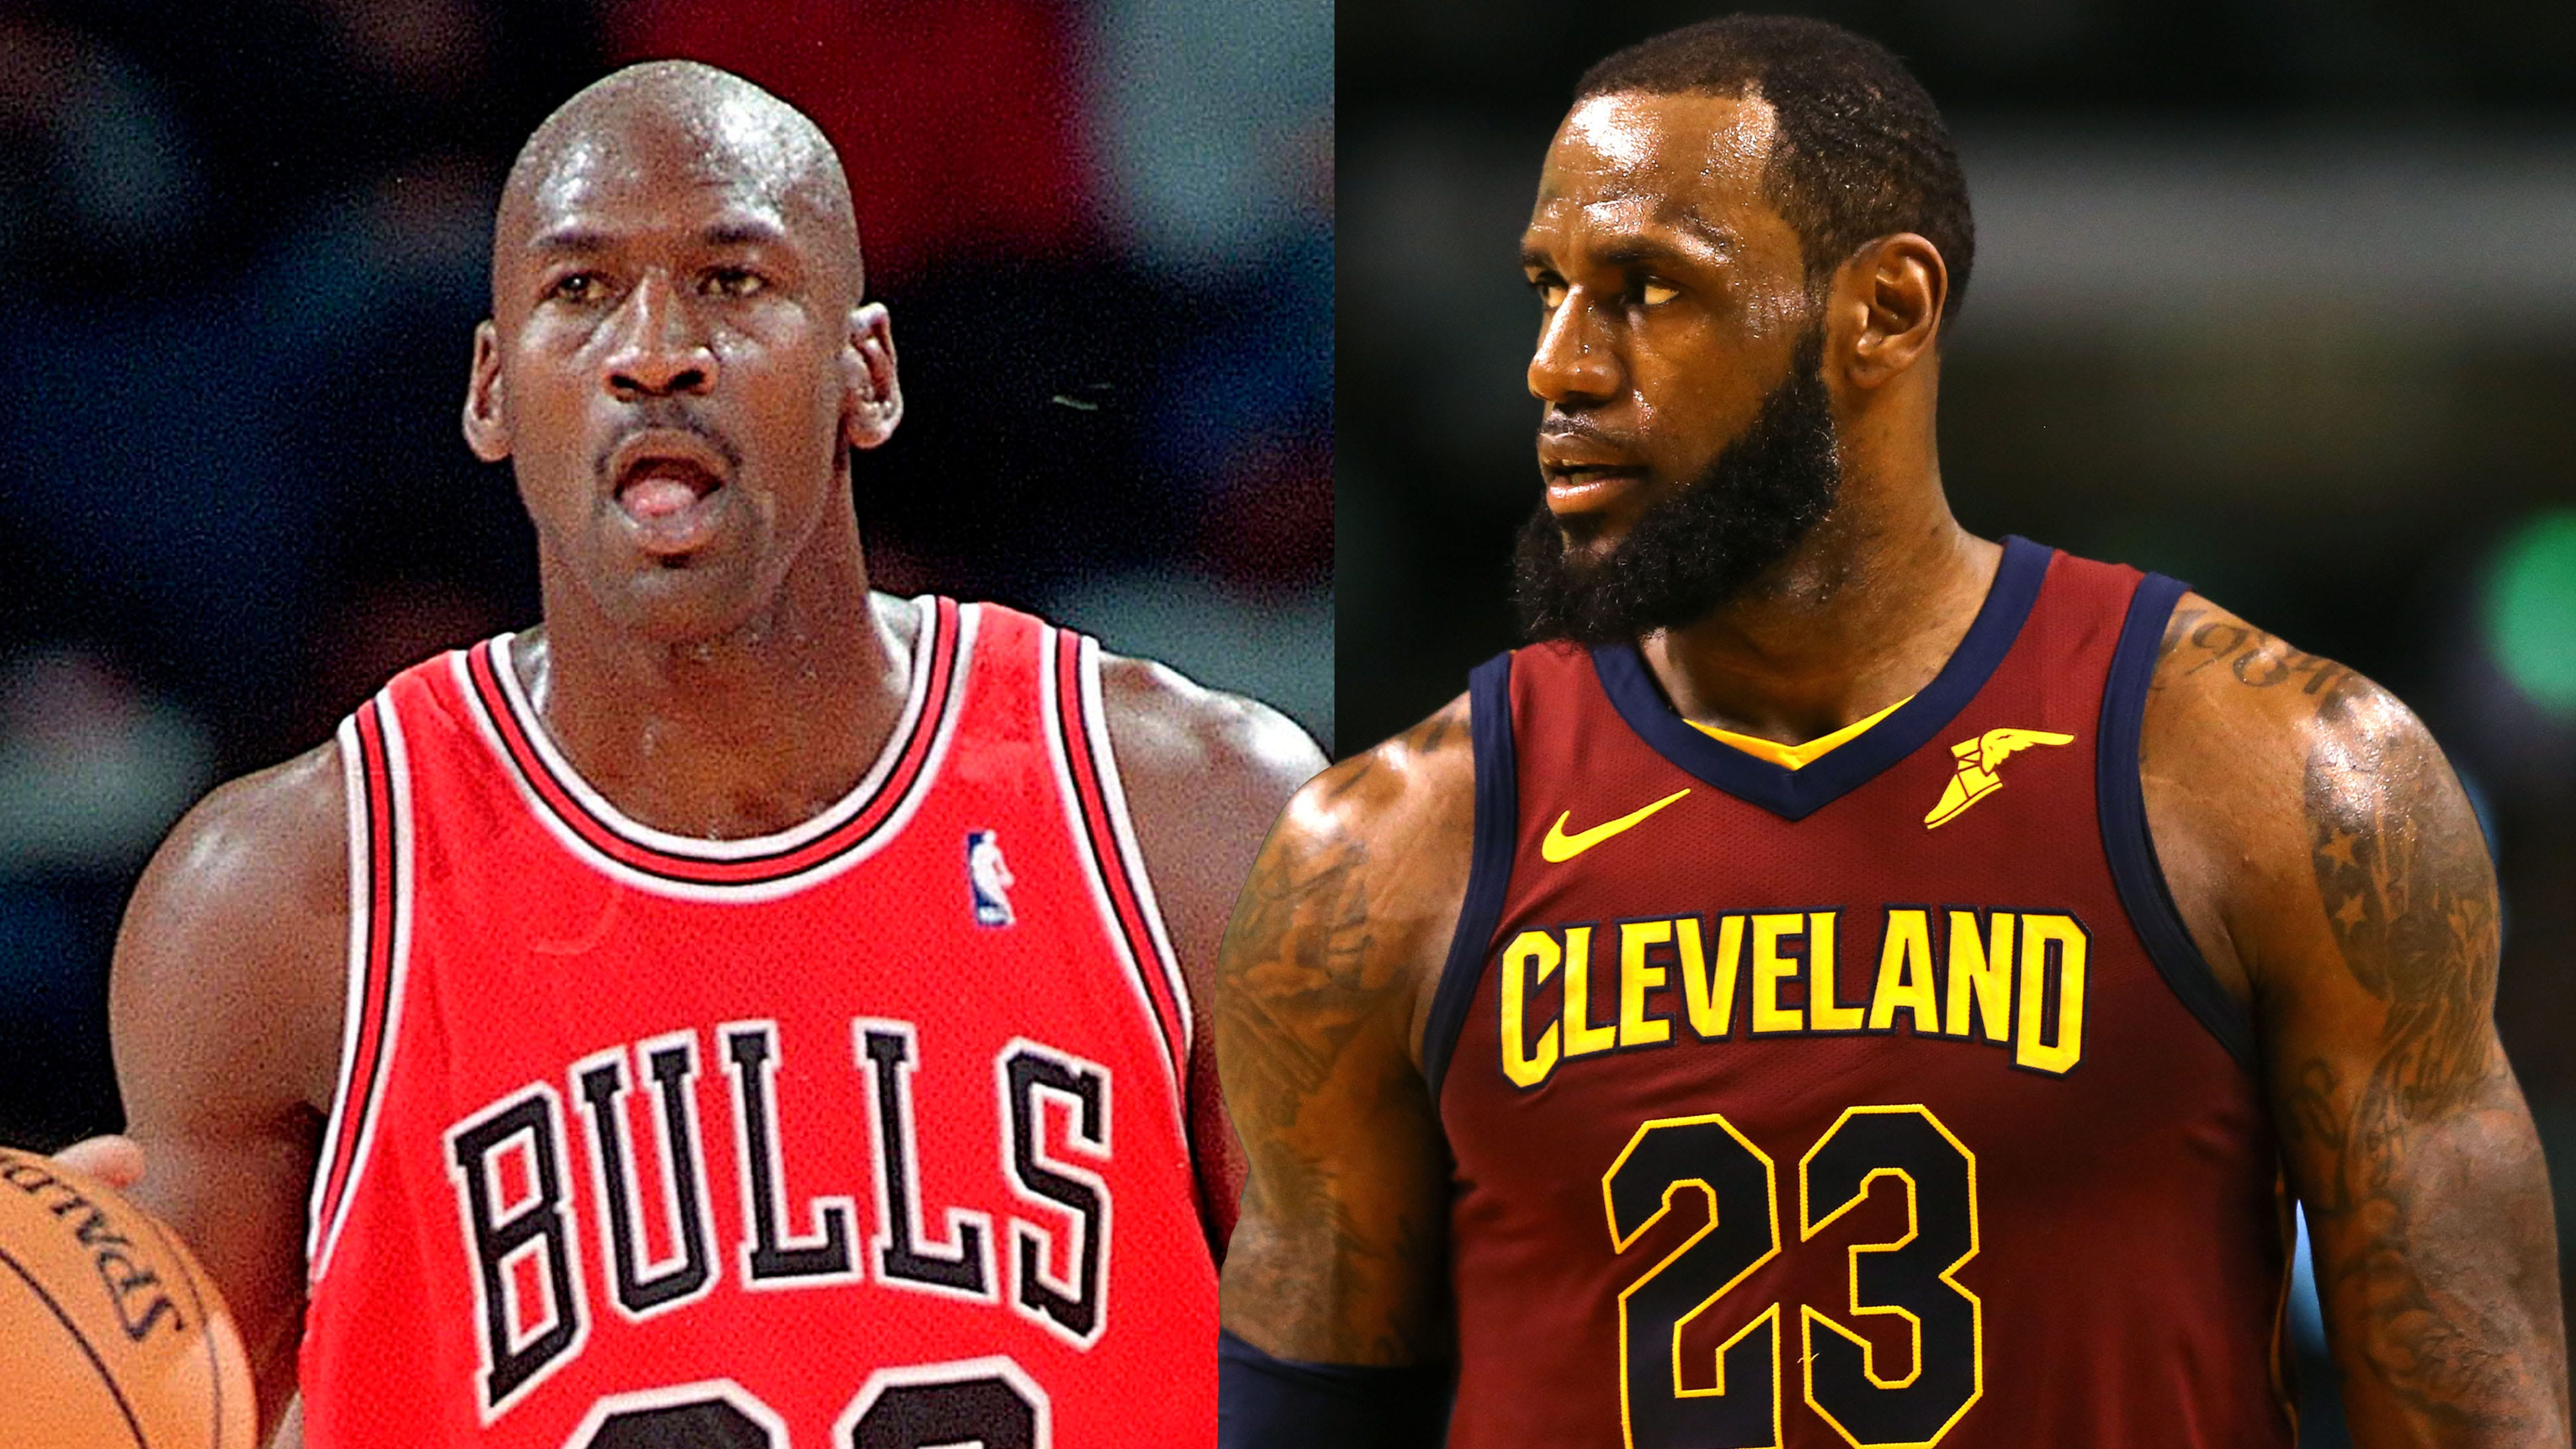 Instrumento Superioridad Tacto  Why LeBron James is the G.O.A.T., not Michael Jordan